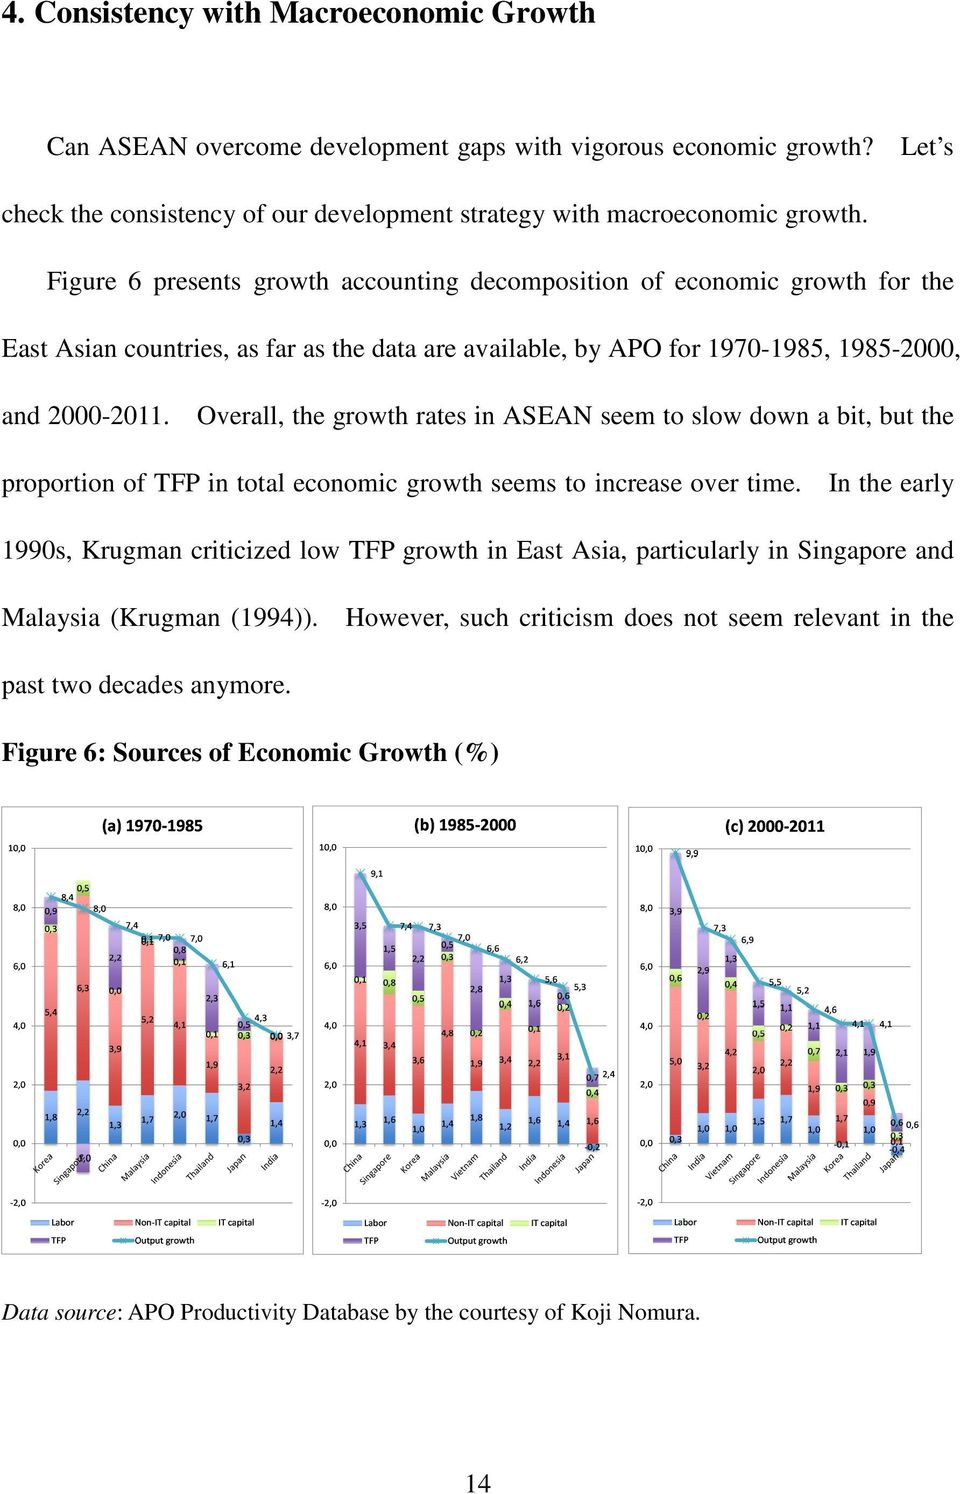 Overall, the growth rates in ASEAN seem to slow down a bit, but the proportion of TFP in total economic growth seems to increase over time.